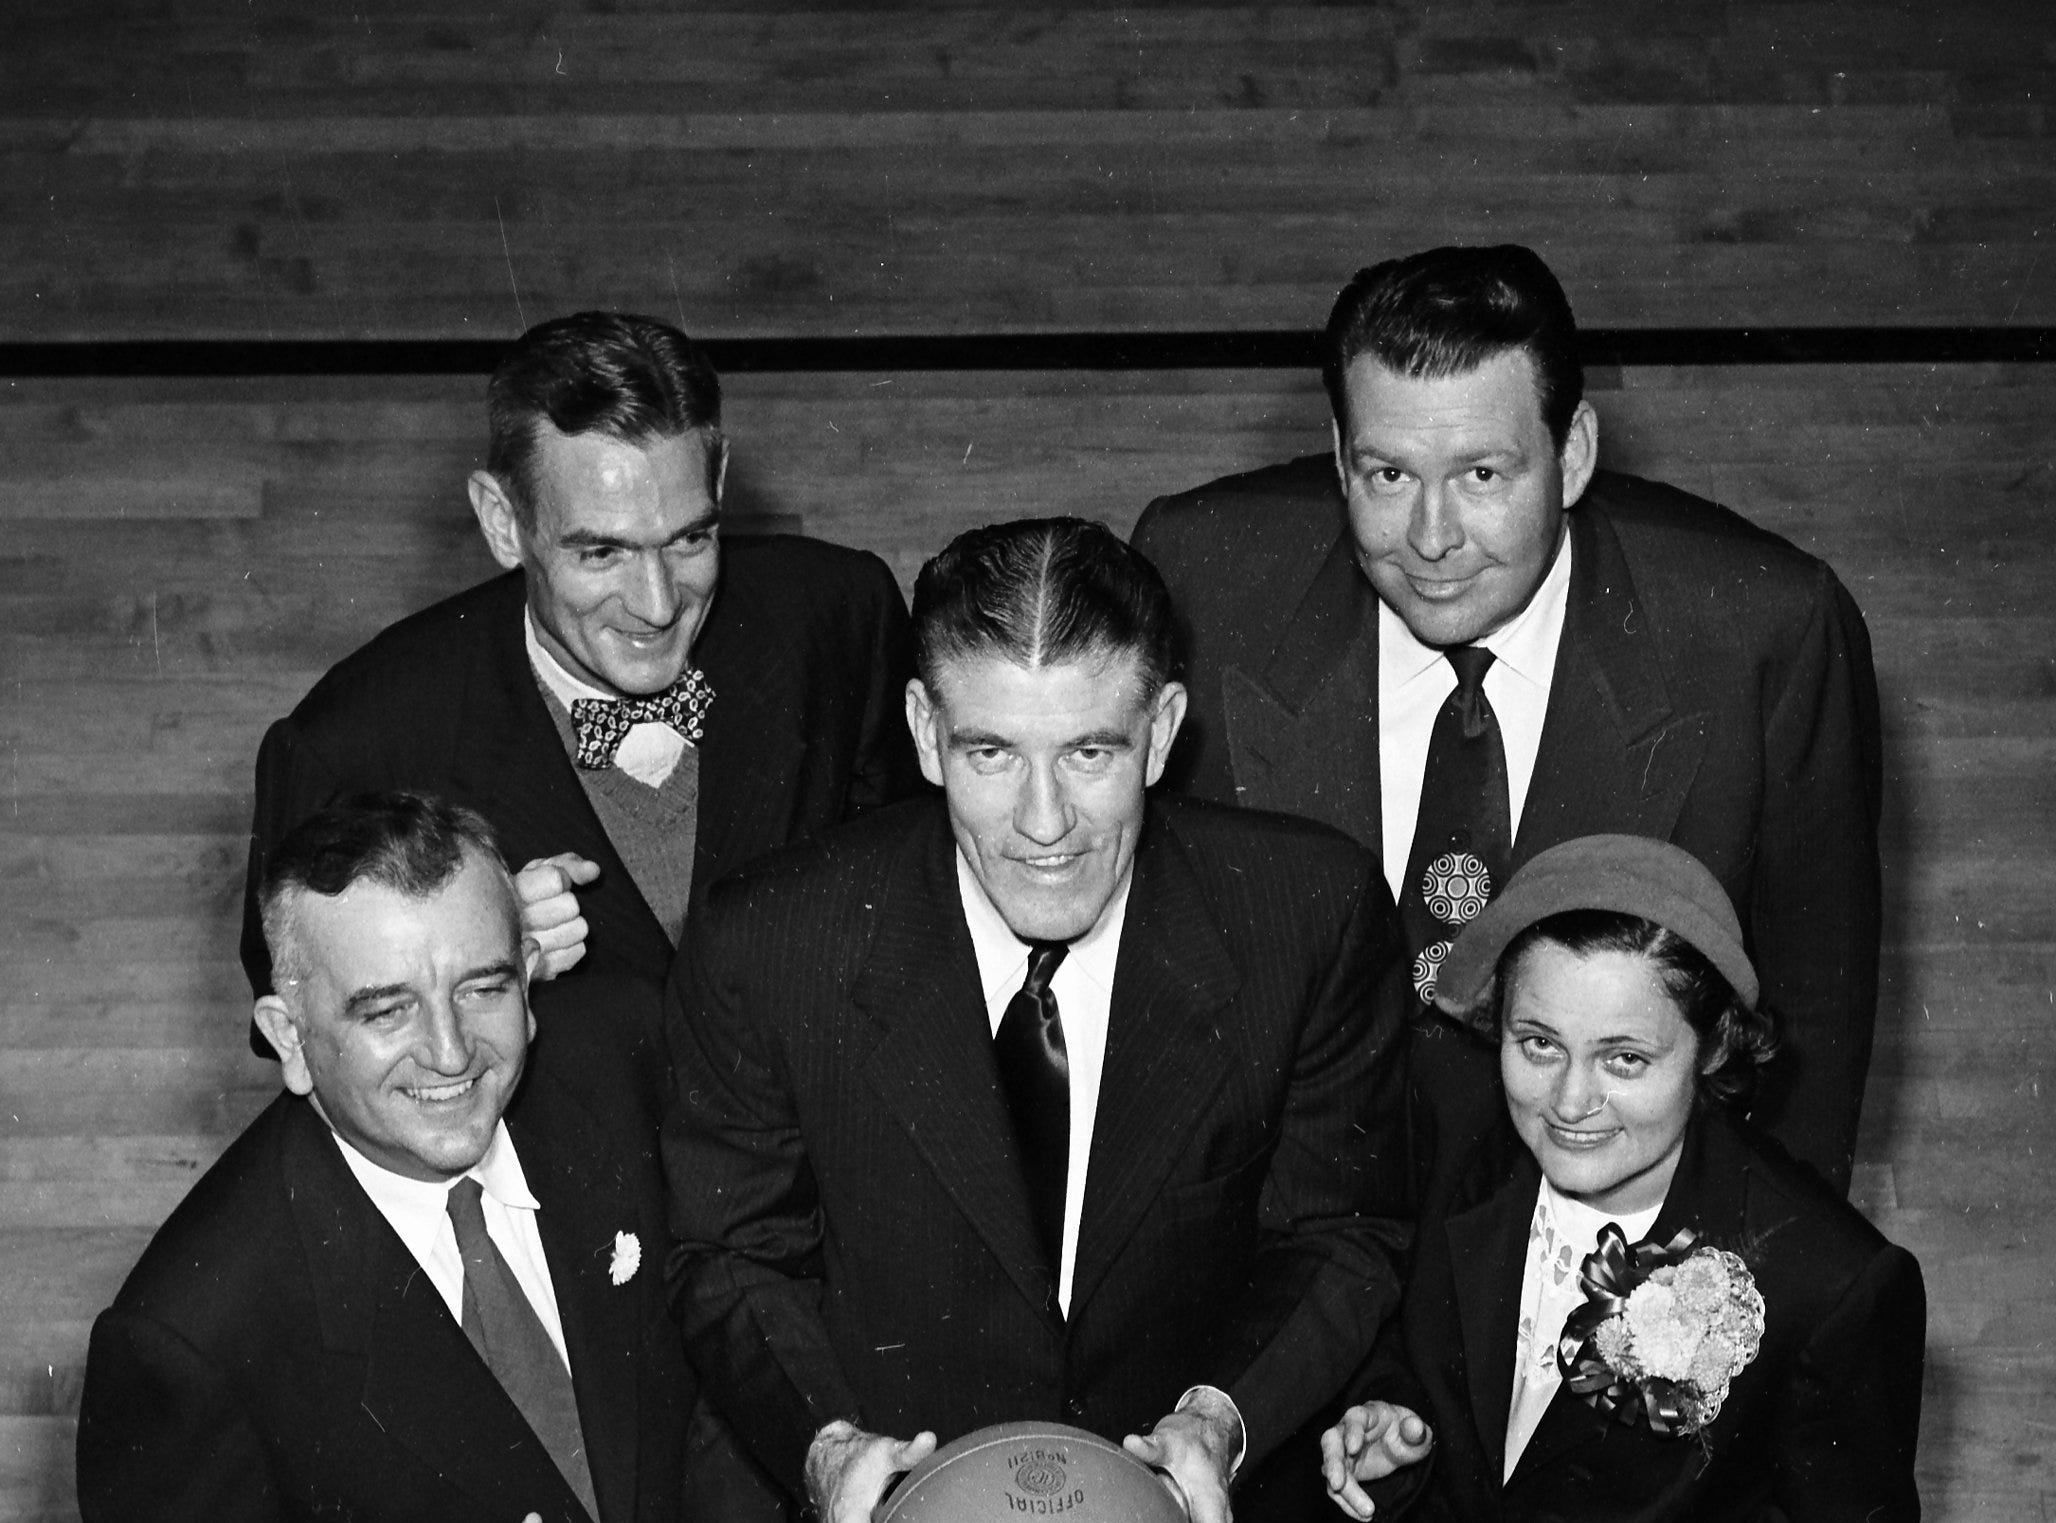 George H. Barnes (Center), superintendent of Shelby County Schools, eyes the hoop for a shot at the dedication of the new gym and auditorium at Frayser High School in November 1951.  Pulling for Mr. Barnes were Ira Knox (Left), Fraser Boosters representative, L. M. Stevenson (Second Left), Frayser High principal, Dr. Bascom Story (Second Right), Memphis State faculty member and featured speaker and Mrs. Carl Powers (Right), president of the Frayser P.T.A.